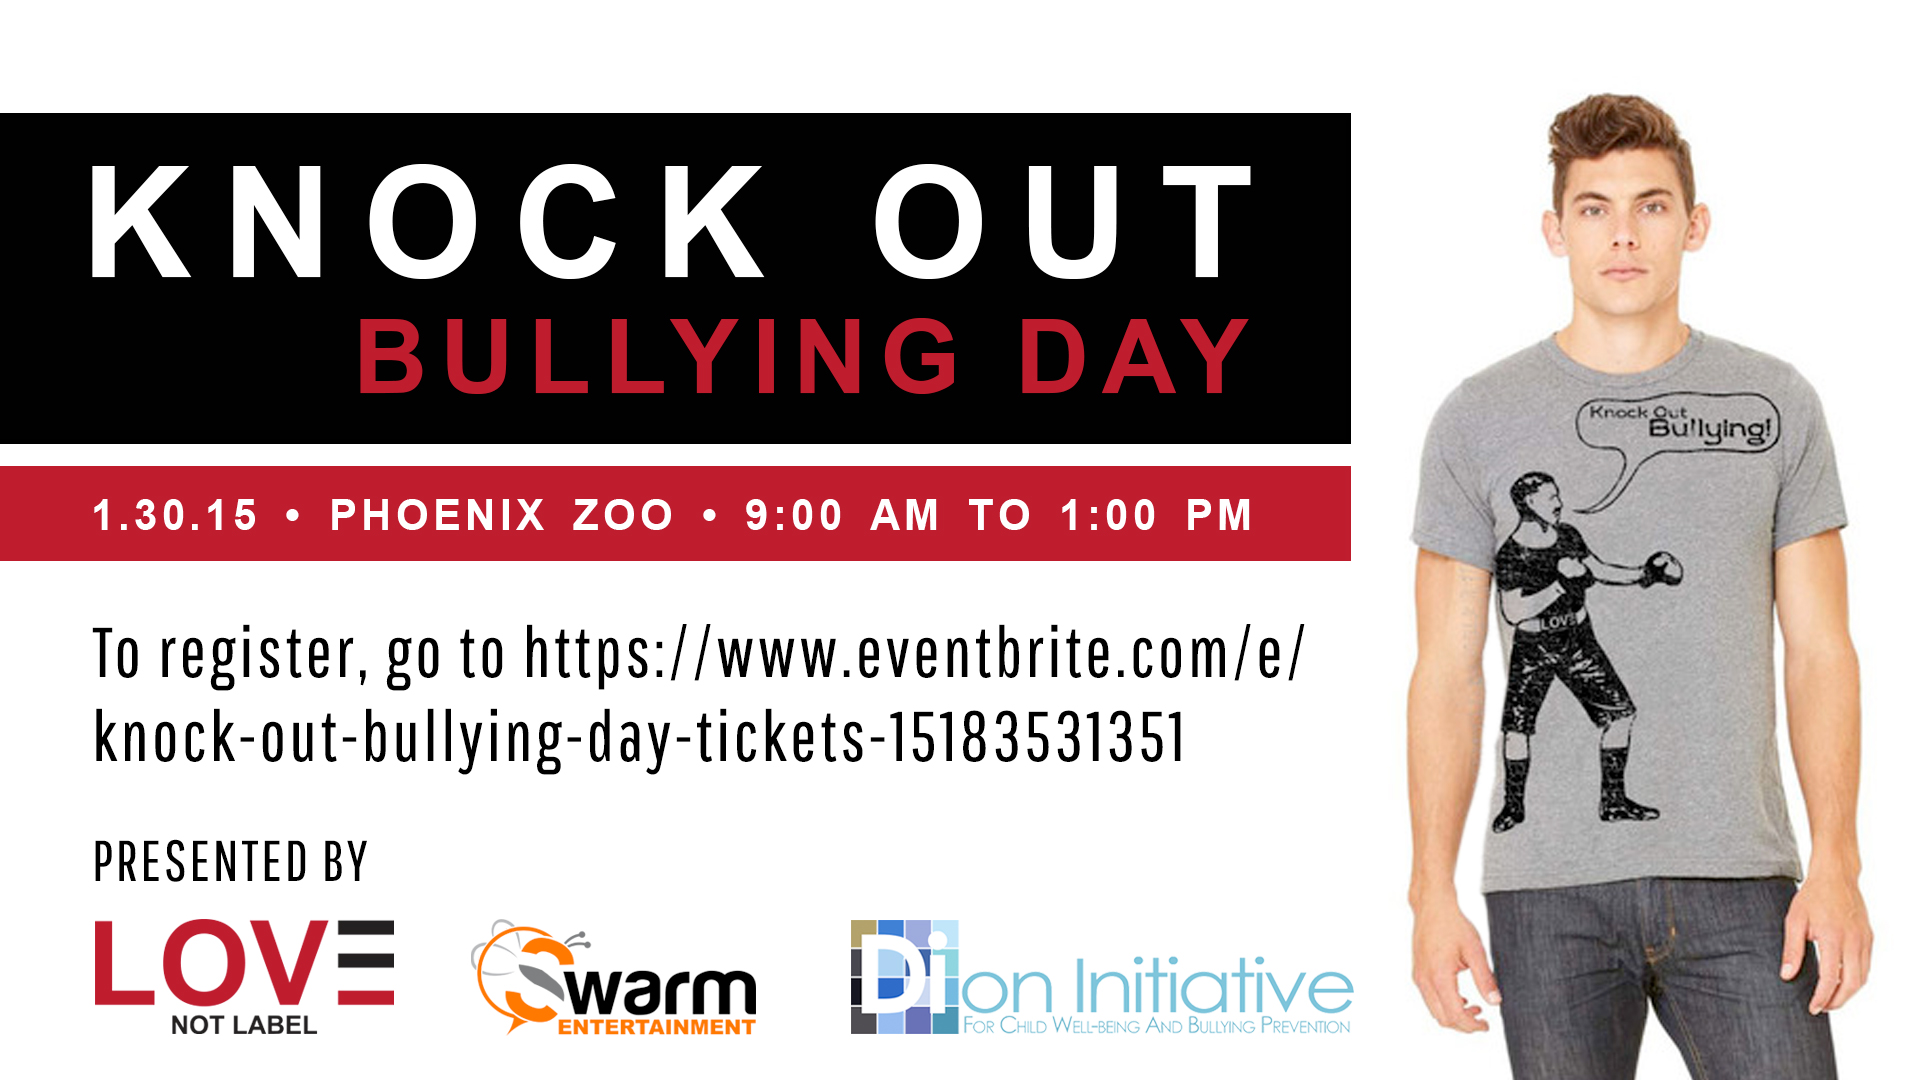 Knock Out Bullying Day - January 30, 2015 from 9am to 1pm. Click to register.